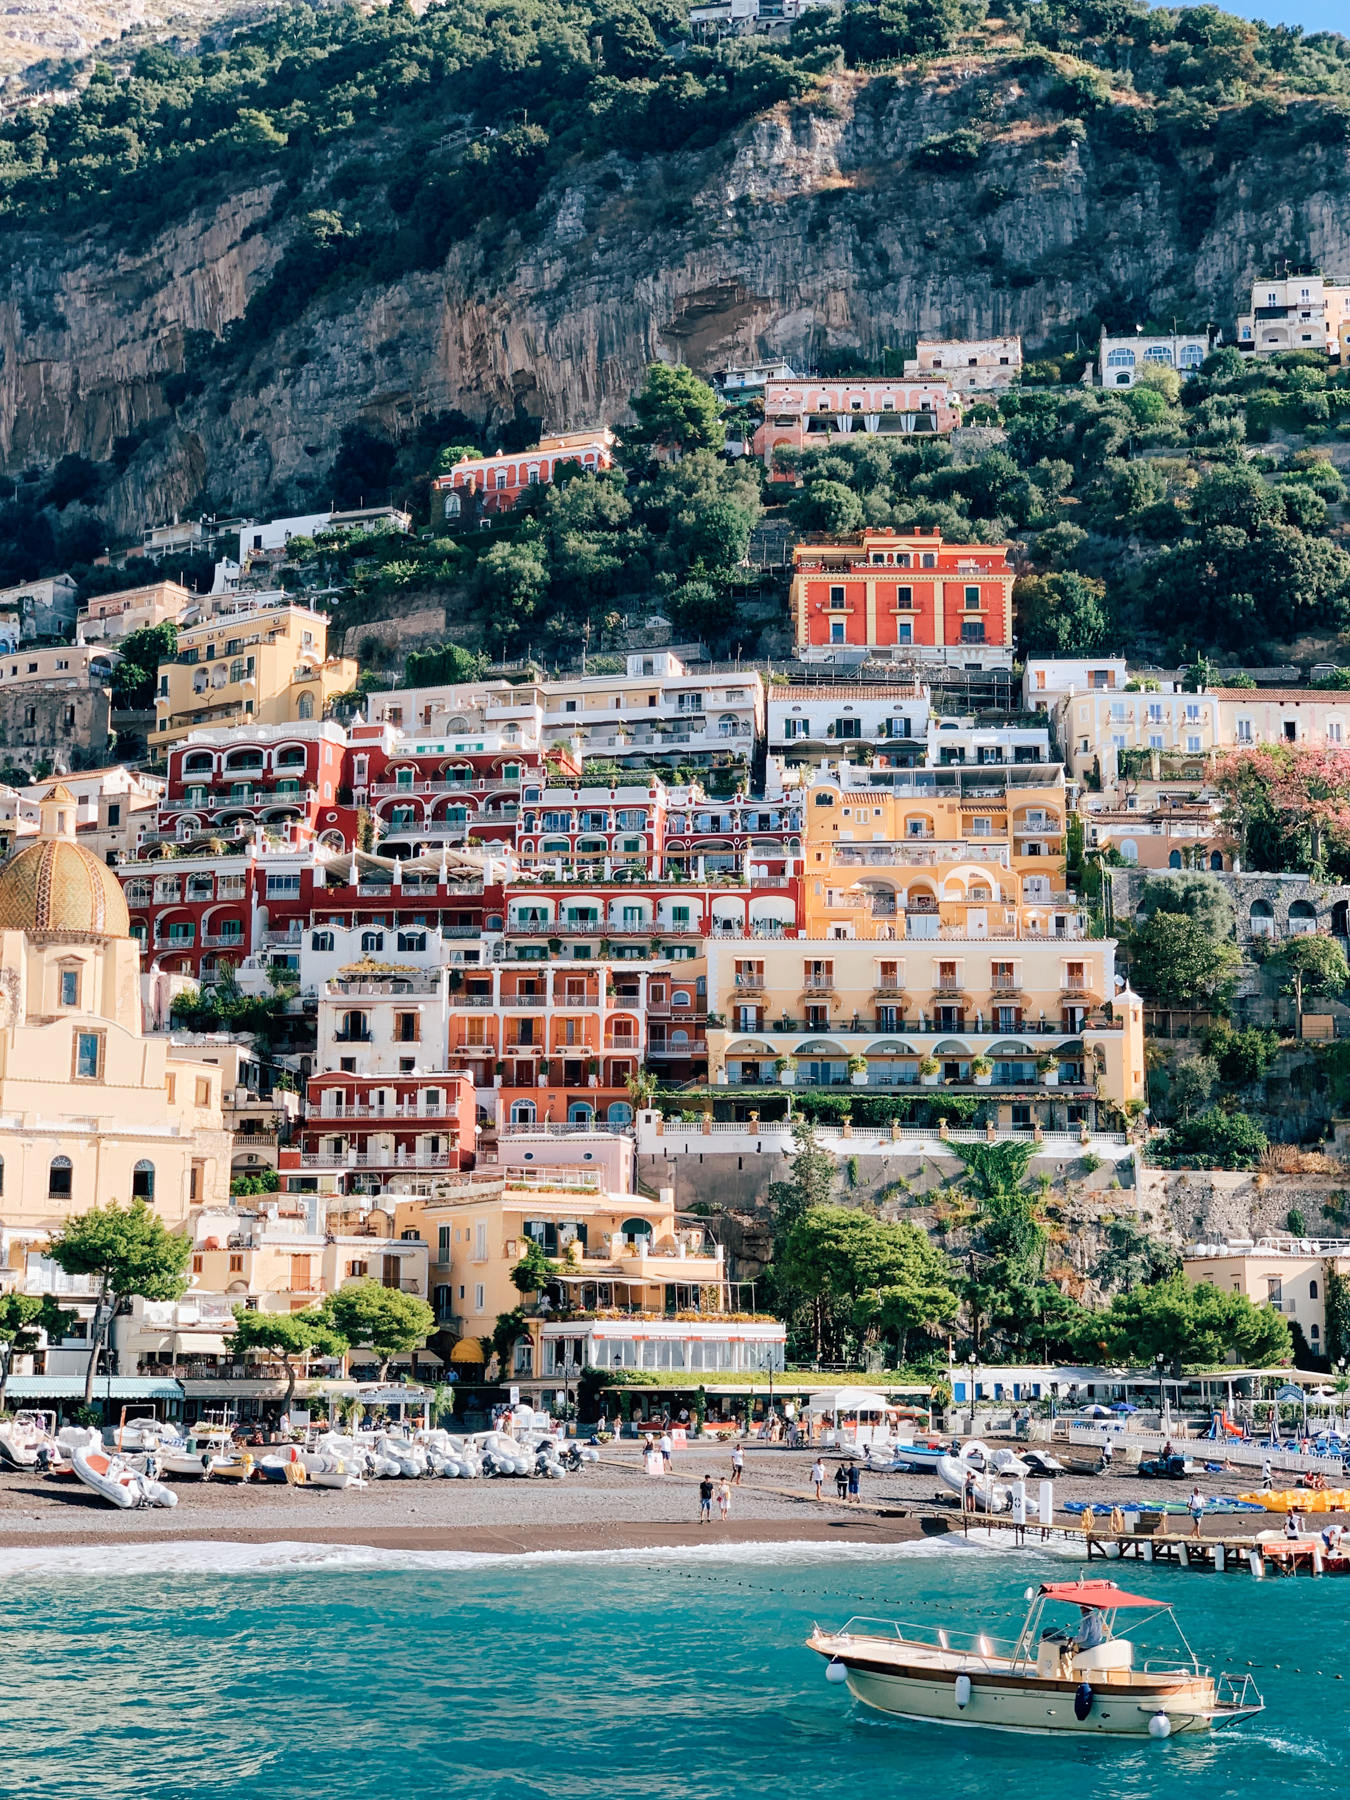 A view of Positano from the water